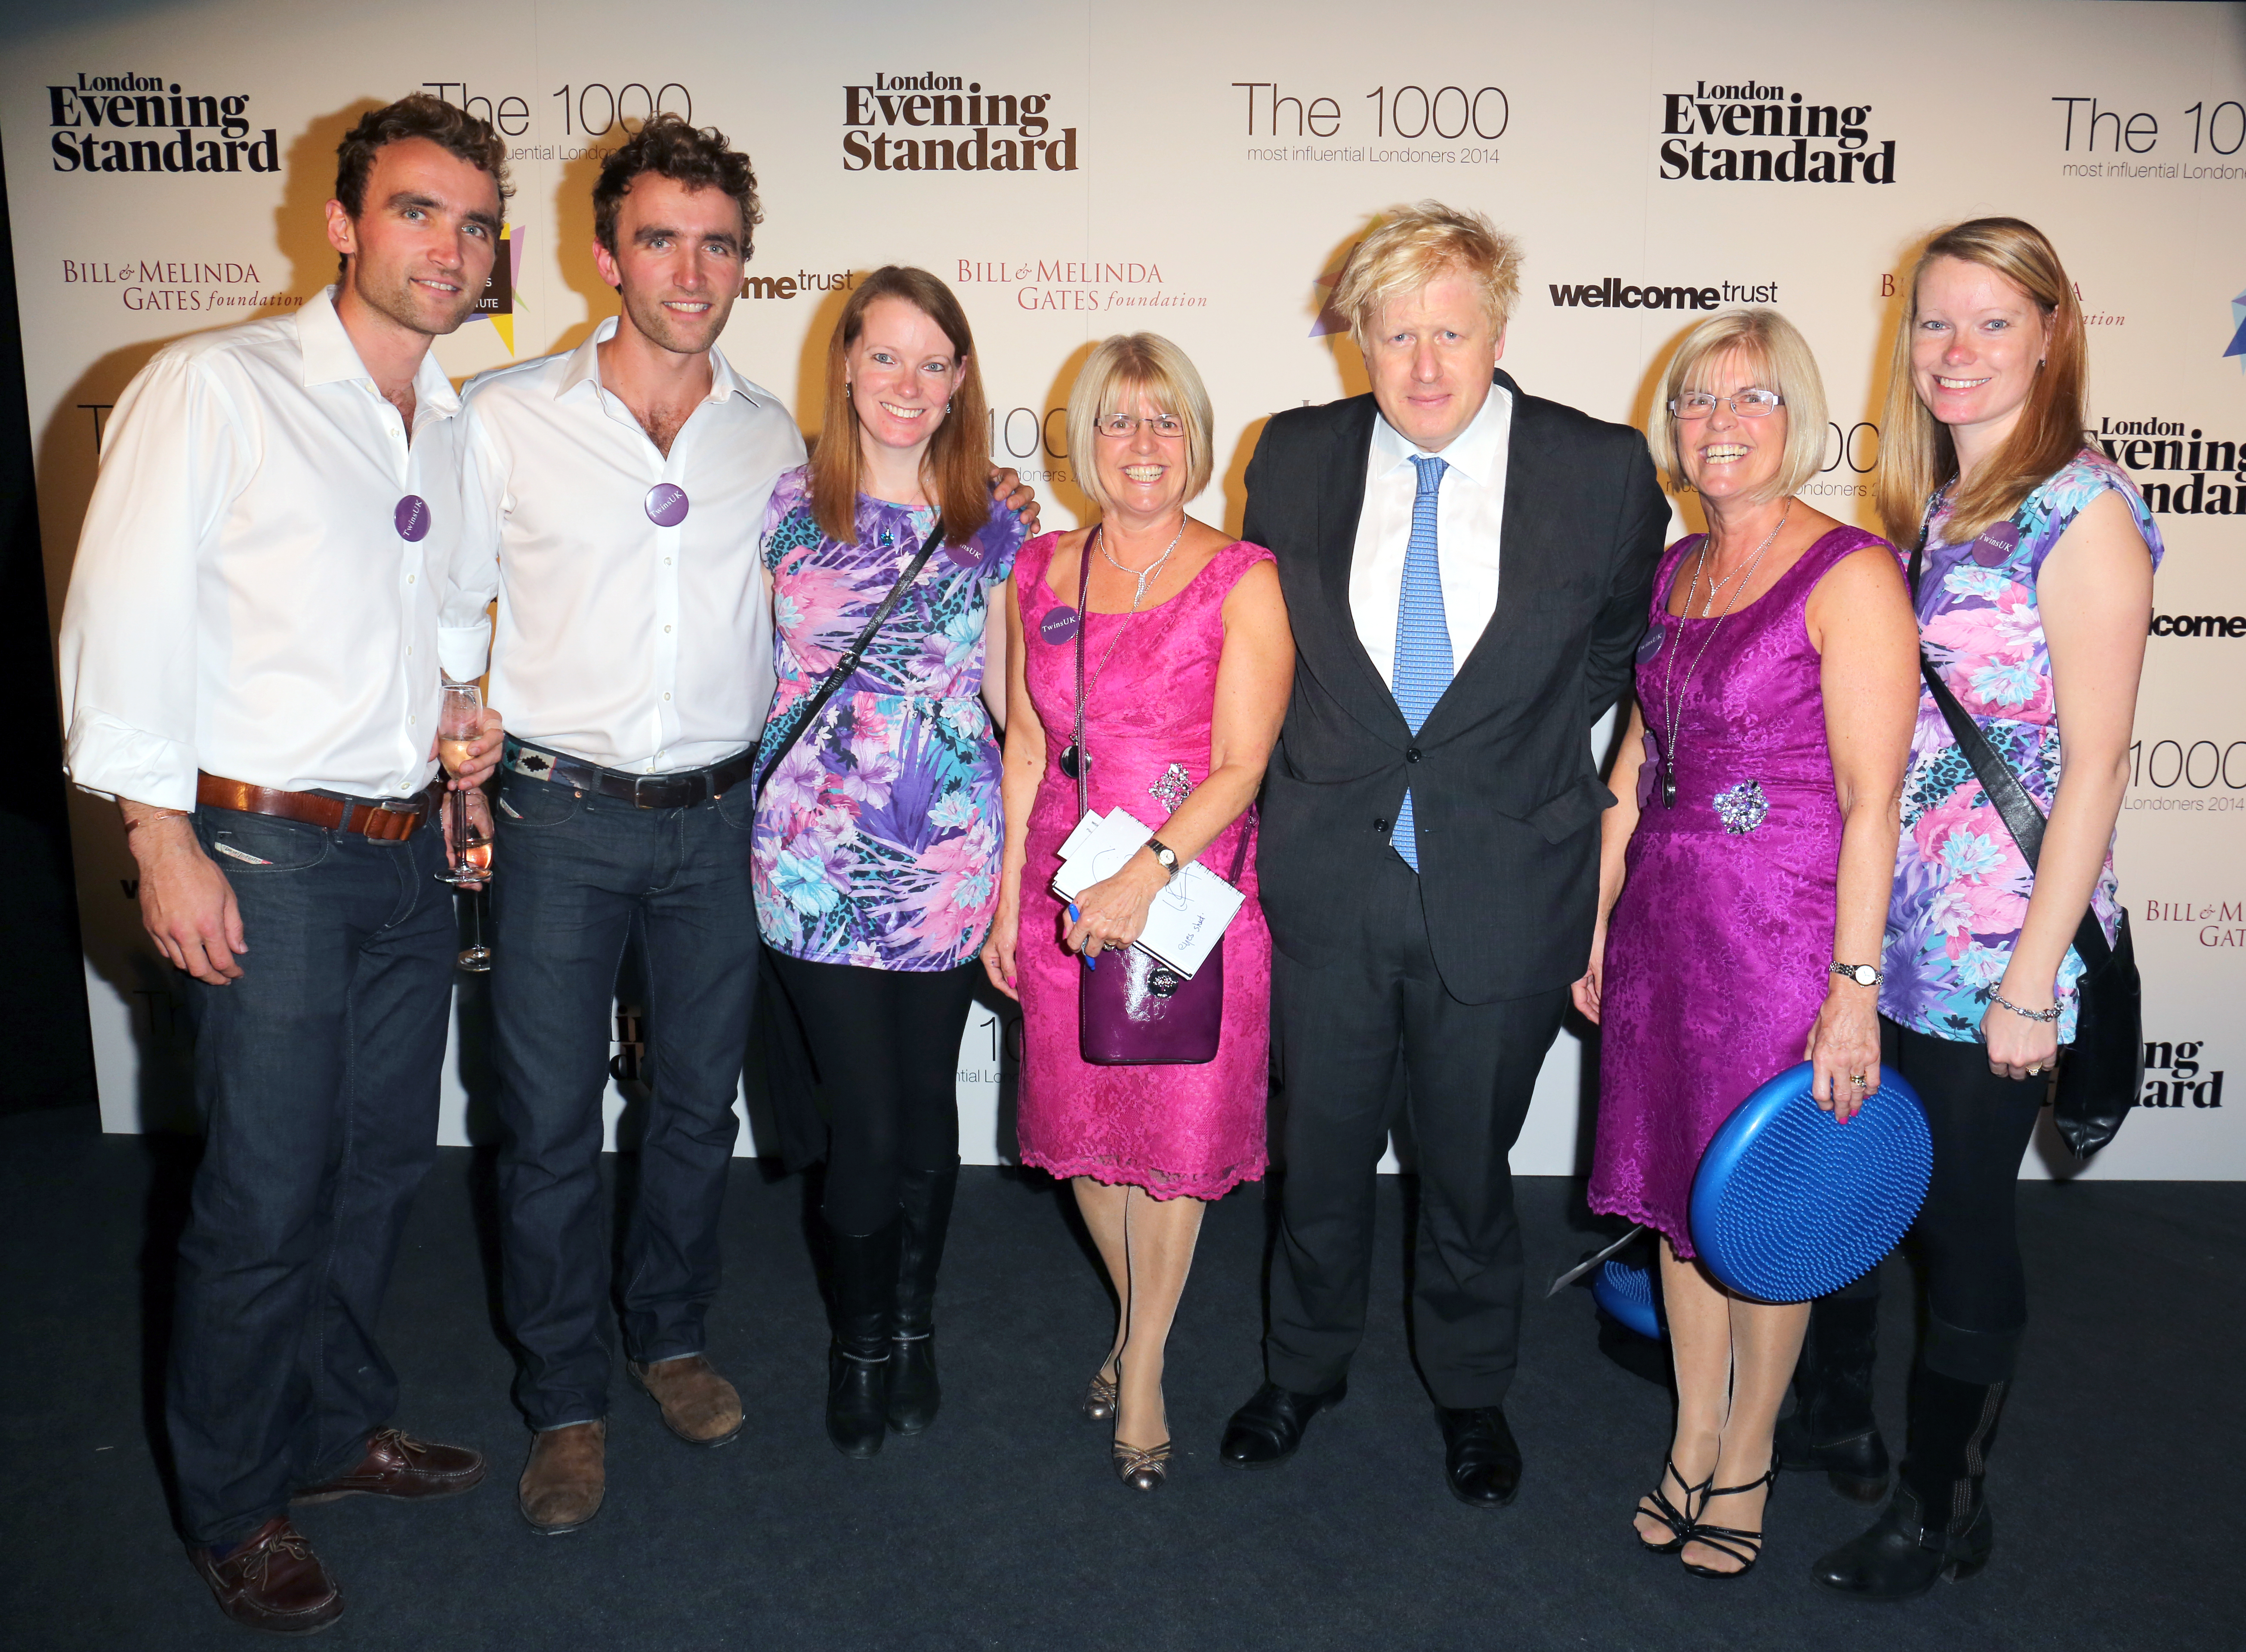 Mayor of London Boris Johnson with identical twins at the Evening Standard's The 1000 Most Influential Londoners 2014, event at The Francis Crick Institute in London.